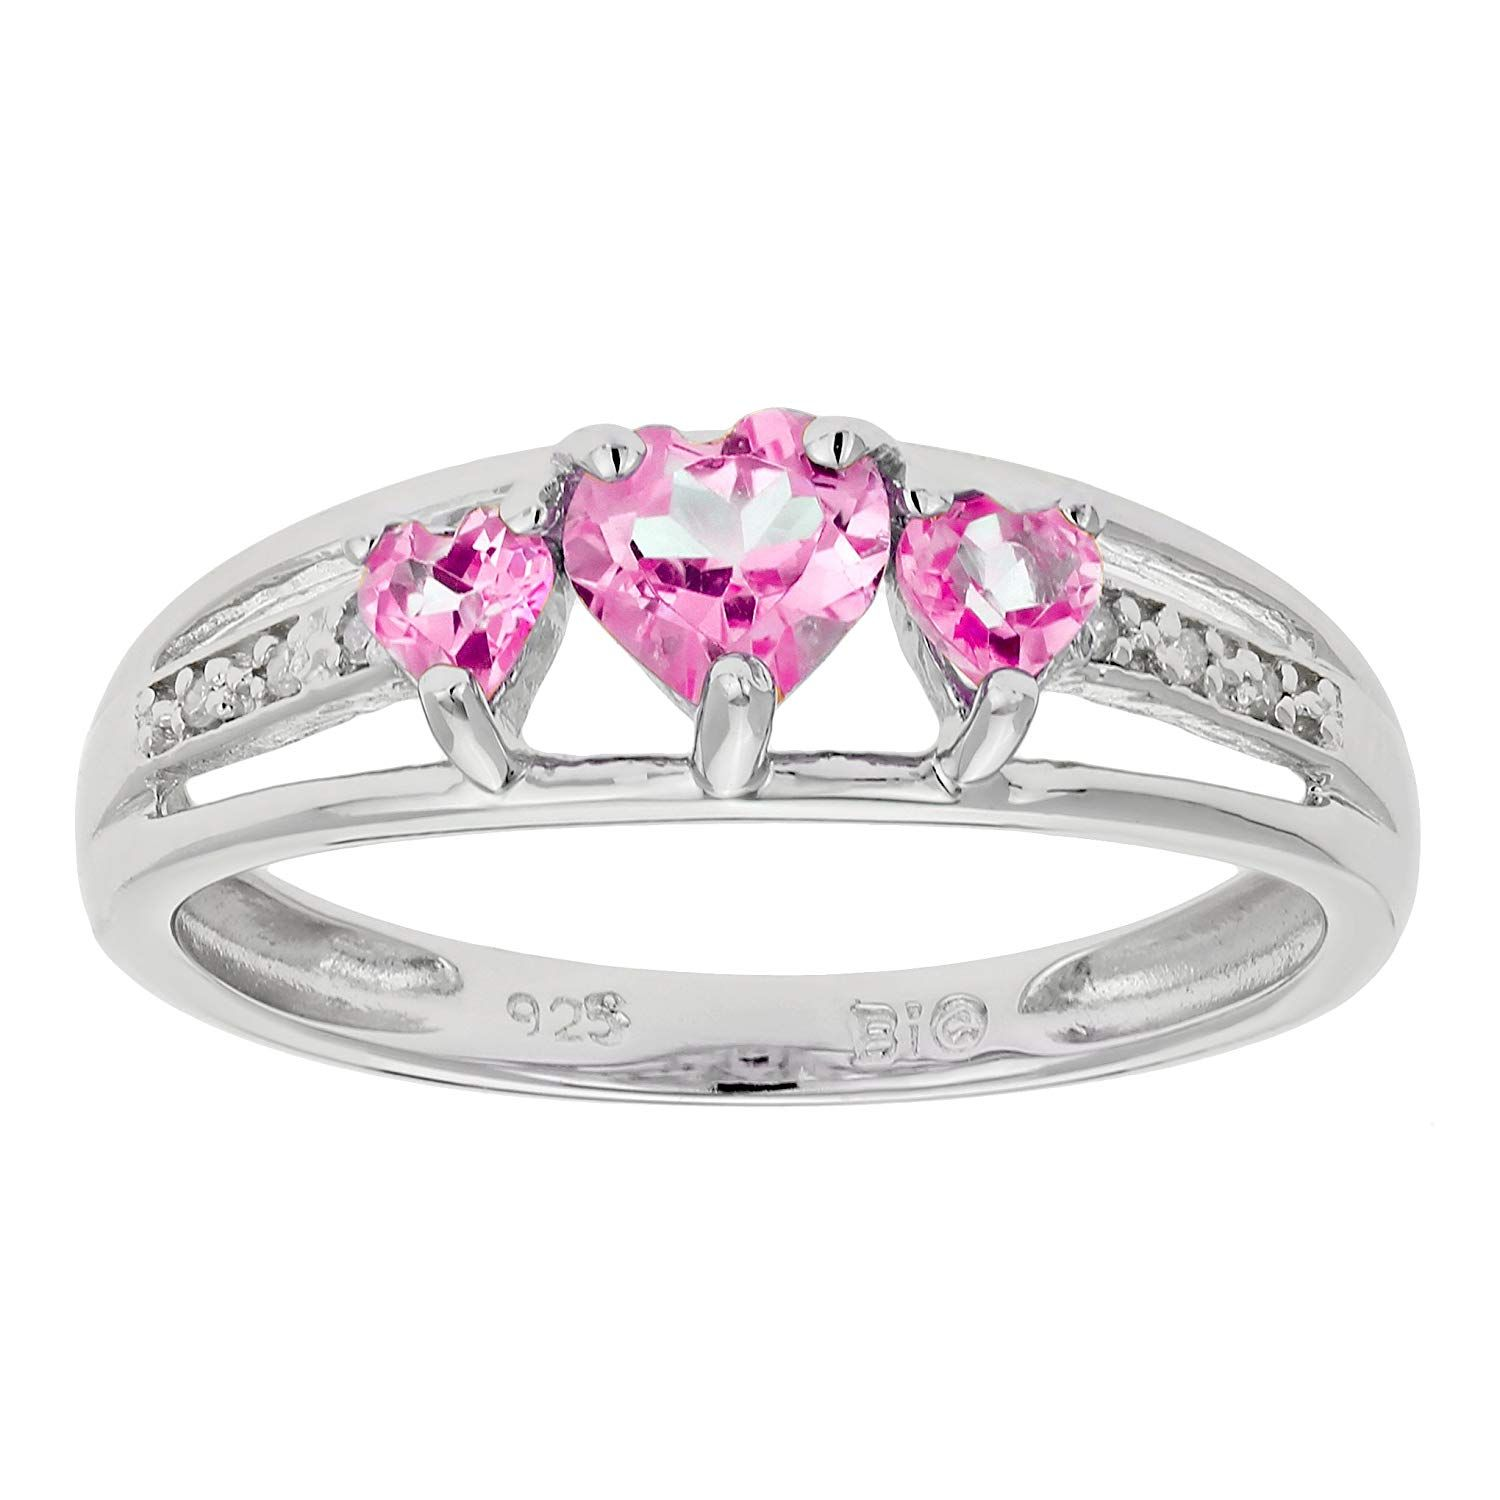 90 Ct Triple Heart Pink Sapphire And 018 Cttw Diamond 10k White Gold Ring We Do Hope You Like The White Gold Rings 925 Sterling Silver Ring Pink Sapphire